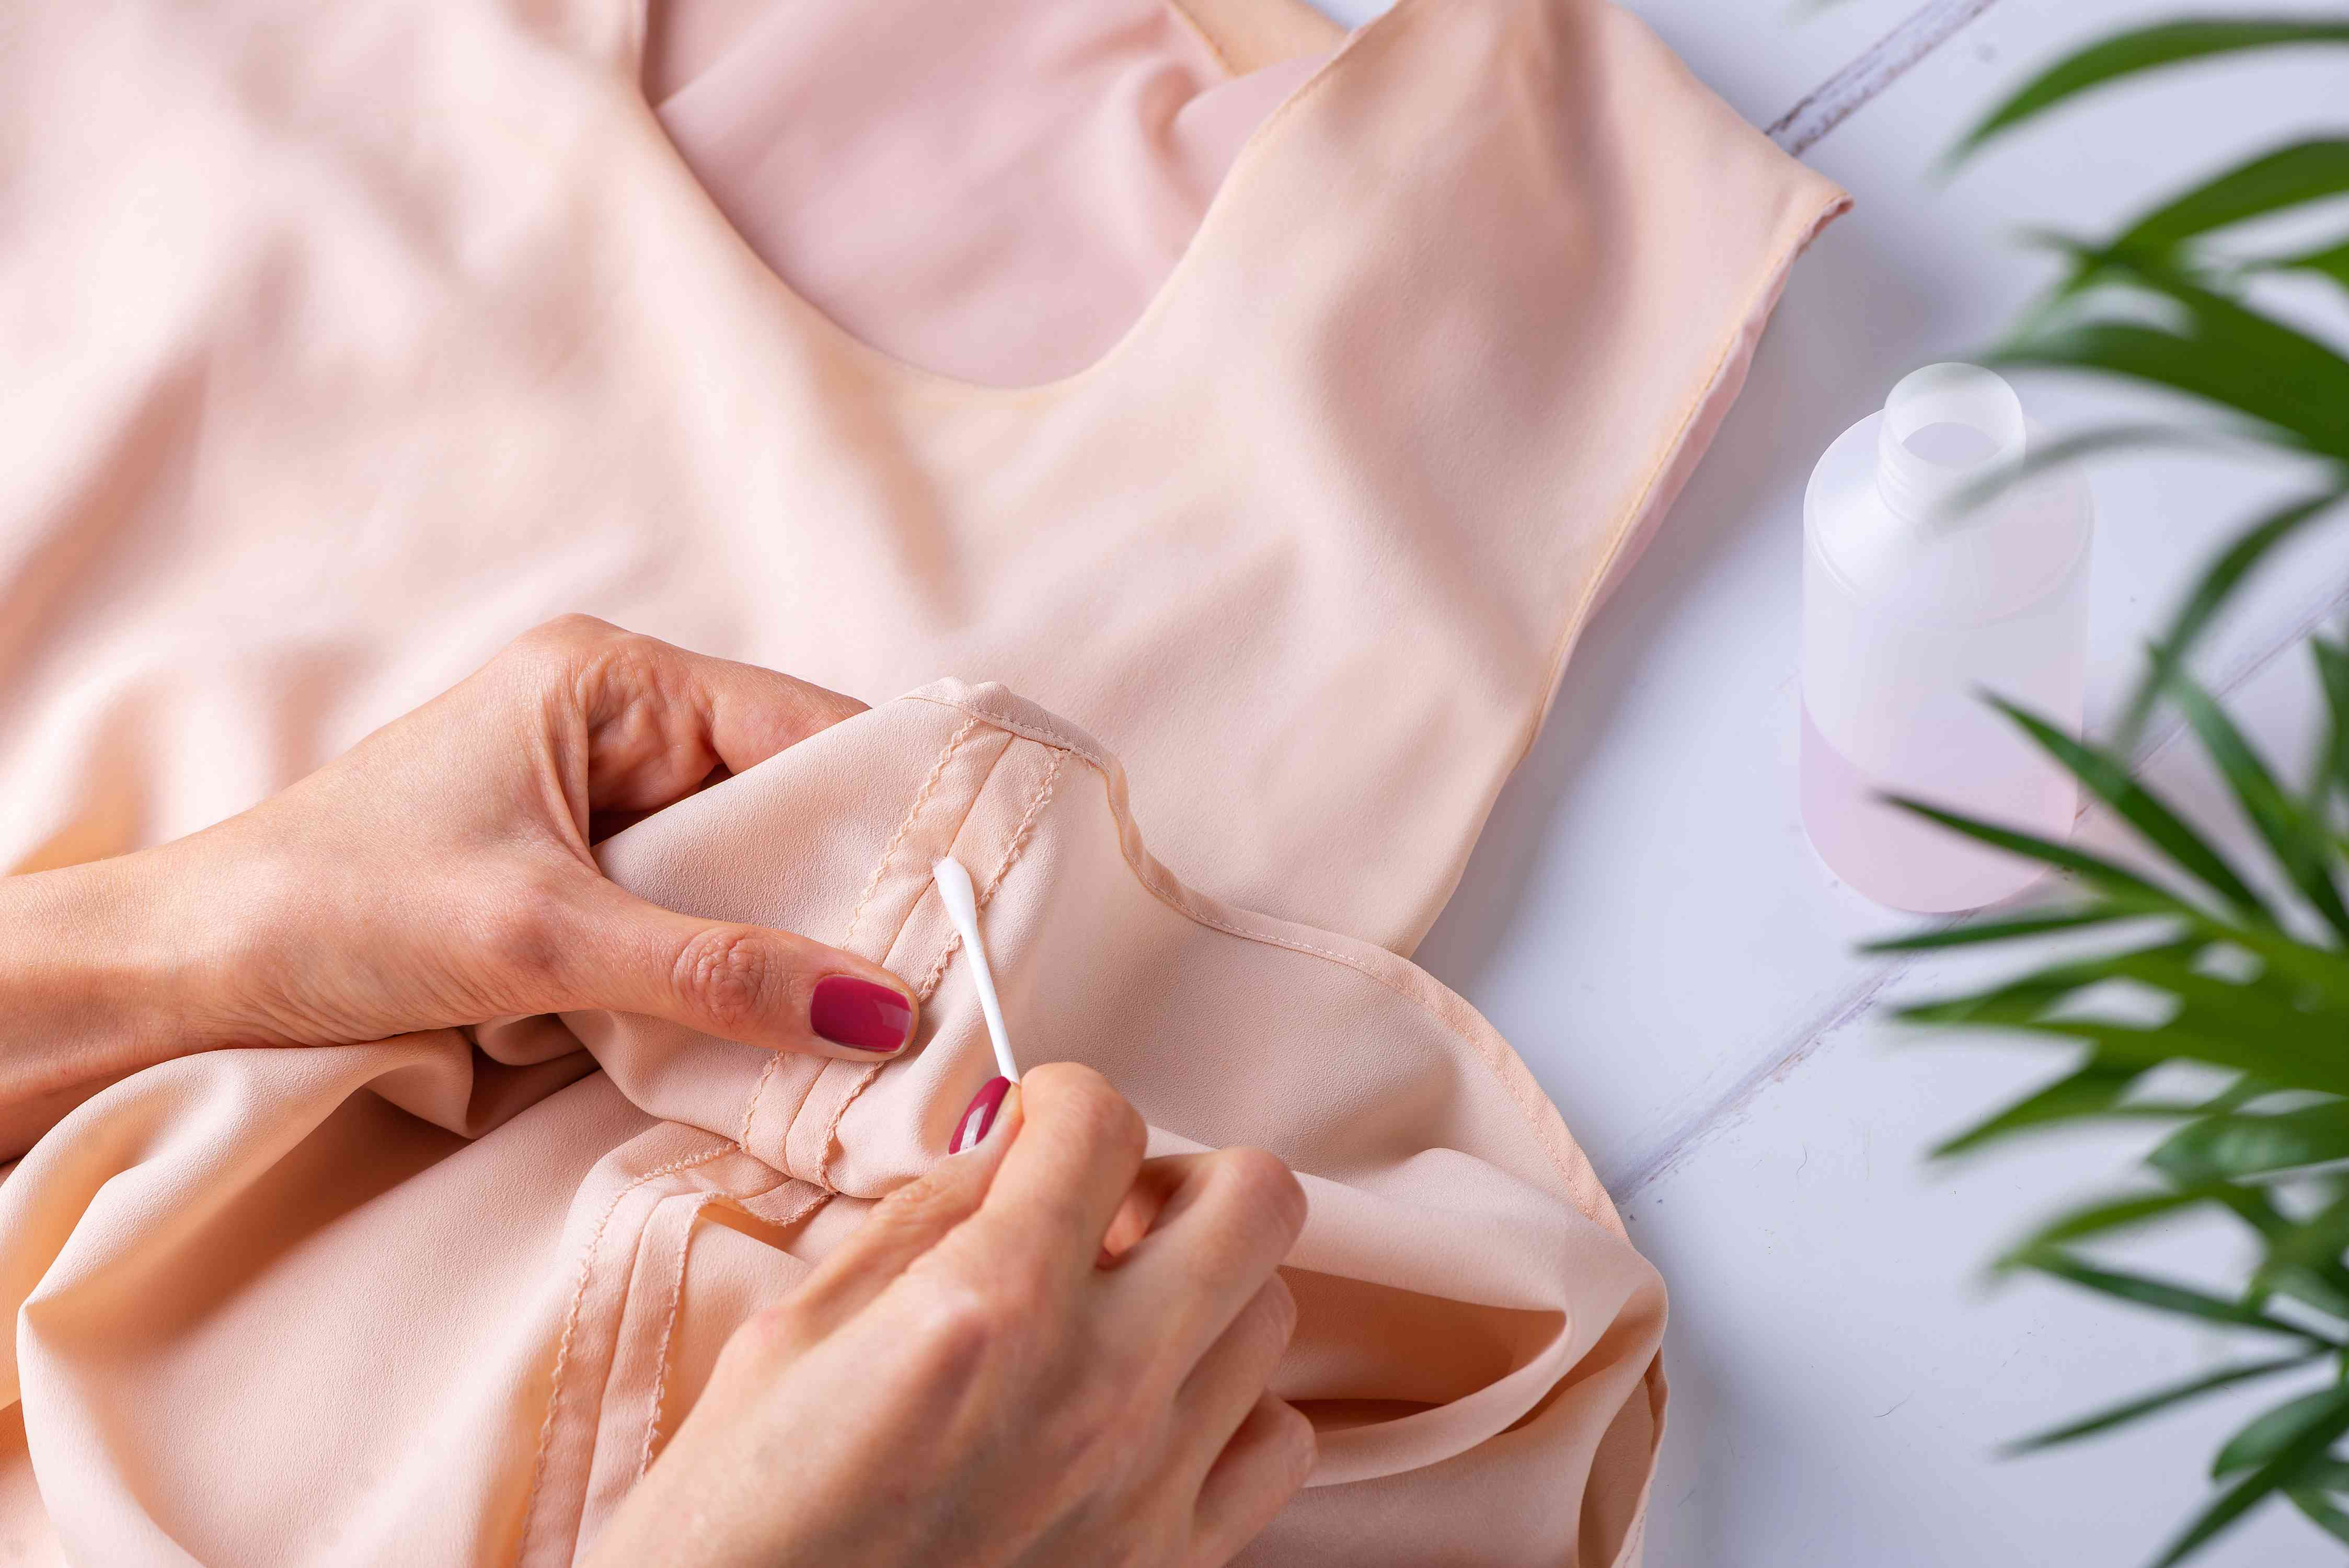 testing acetone on a hidden area of the garment